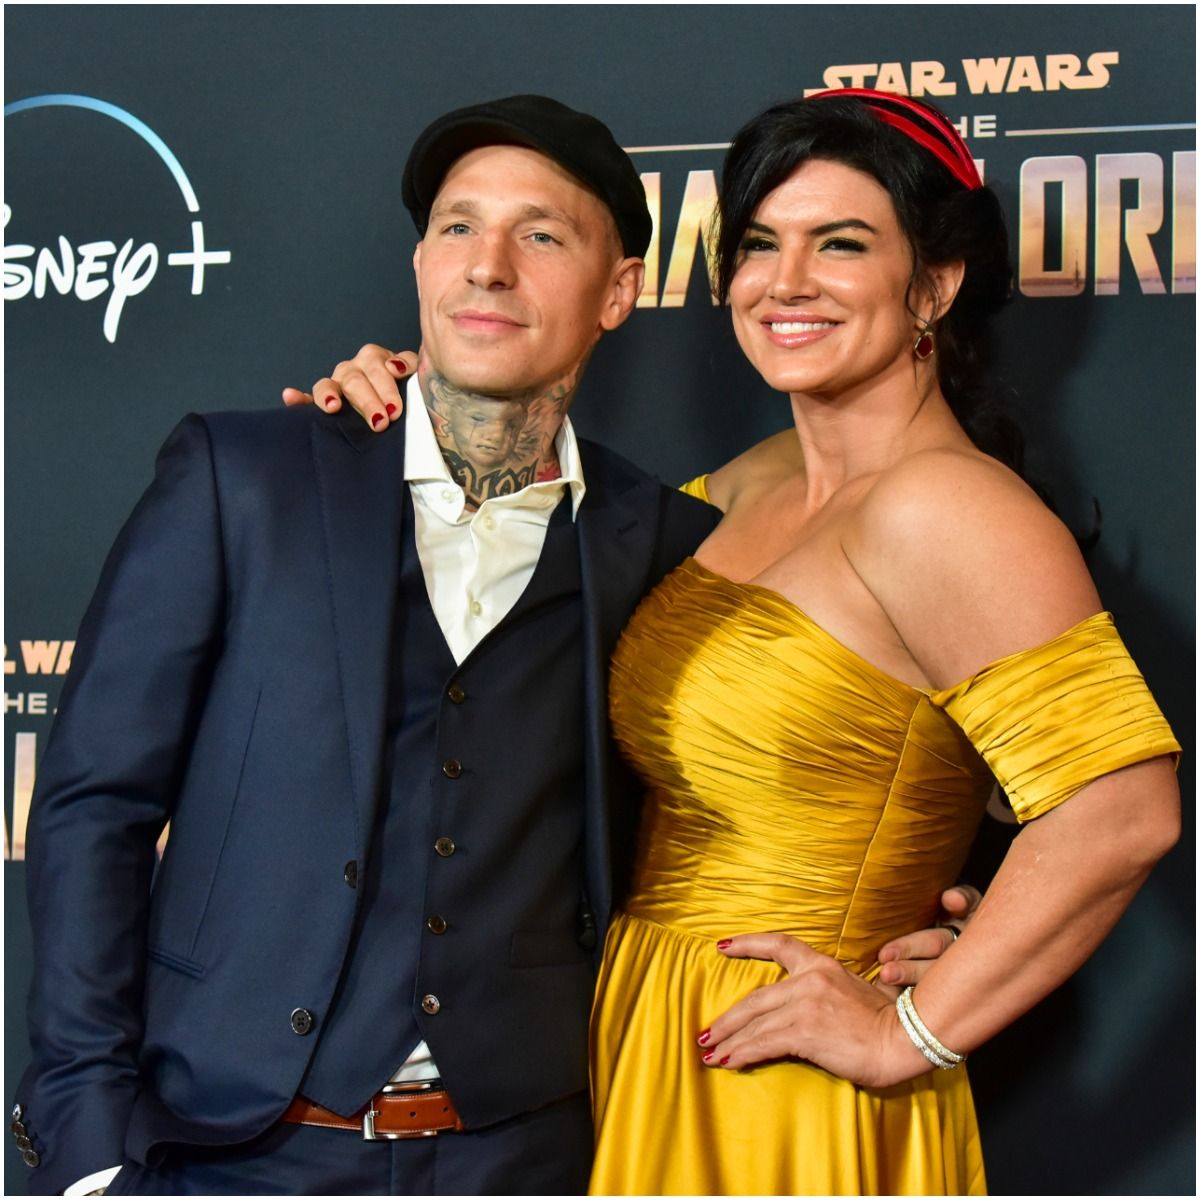 Gina Carano and her boyfriend Kevin Ross